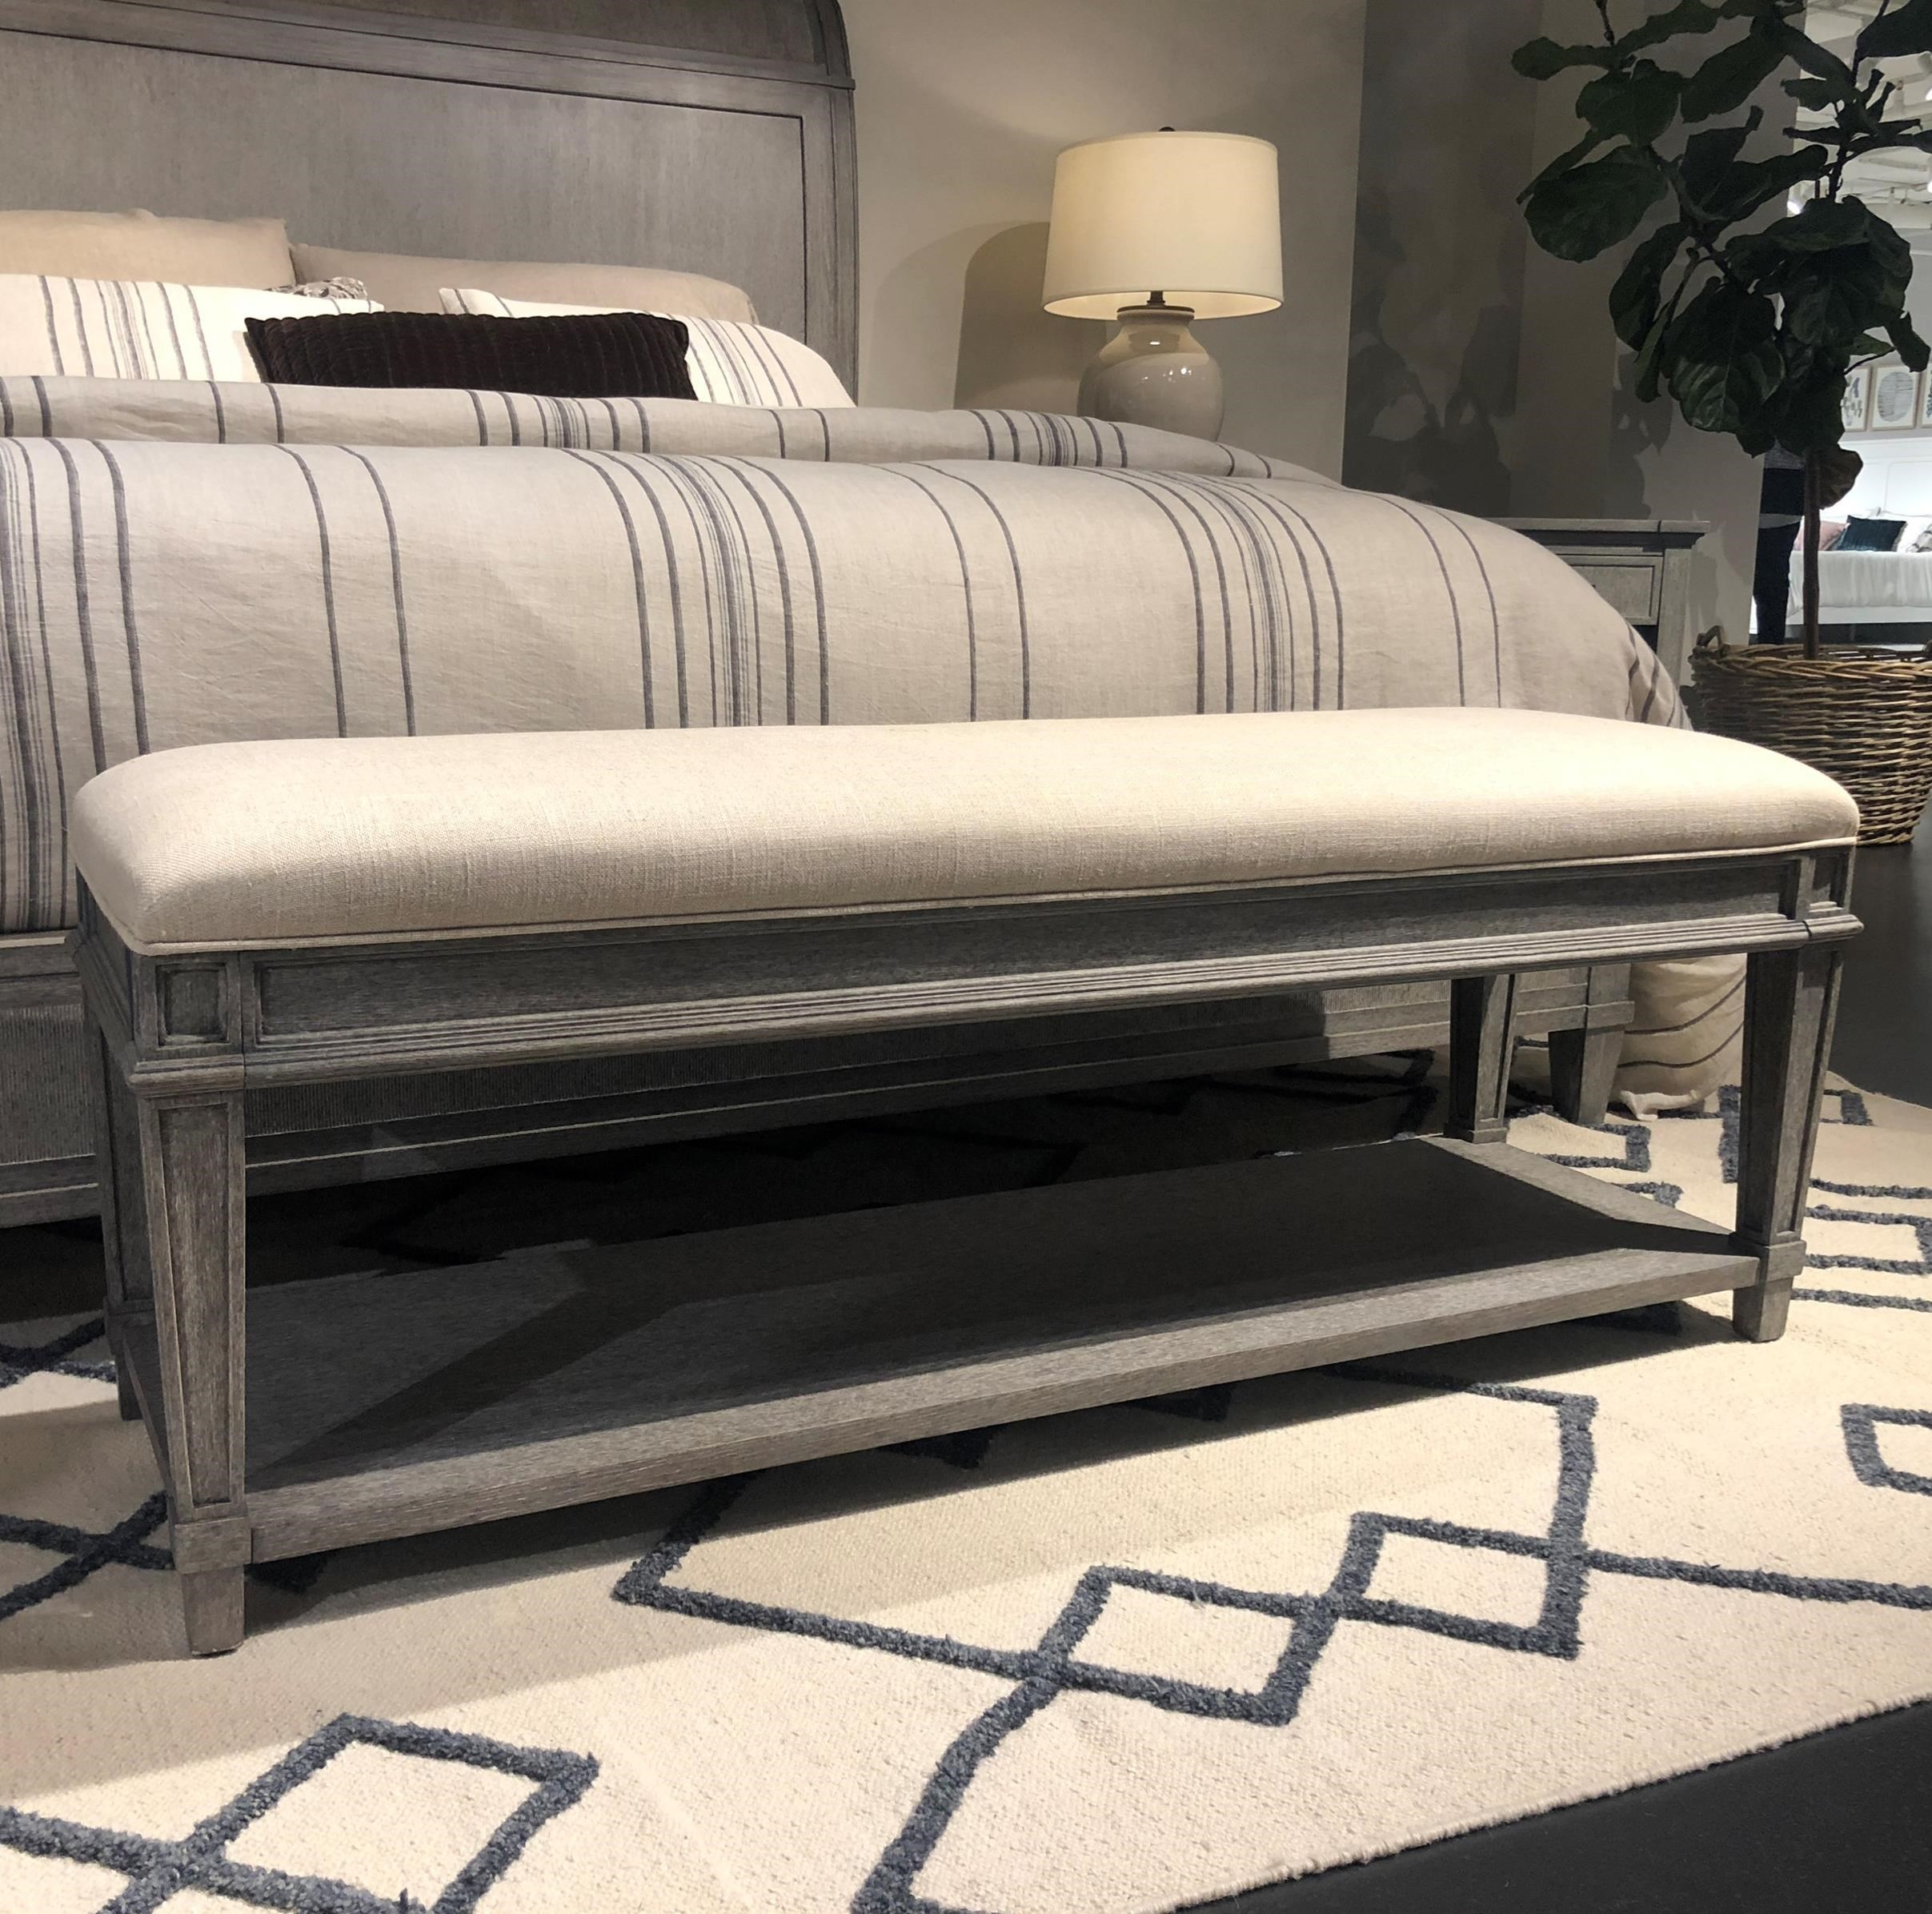 Willow Bed End Bench by Stanley Furniture at Alison Craig Home Furnishings